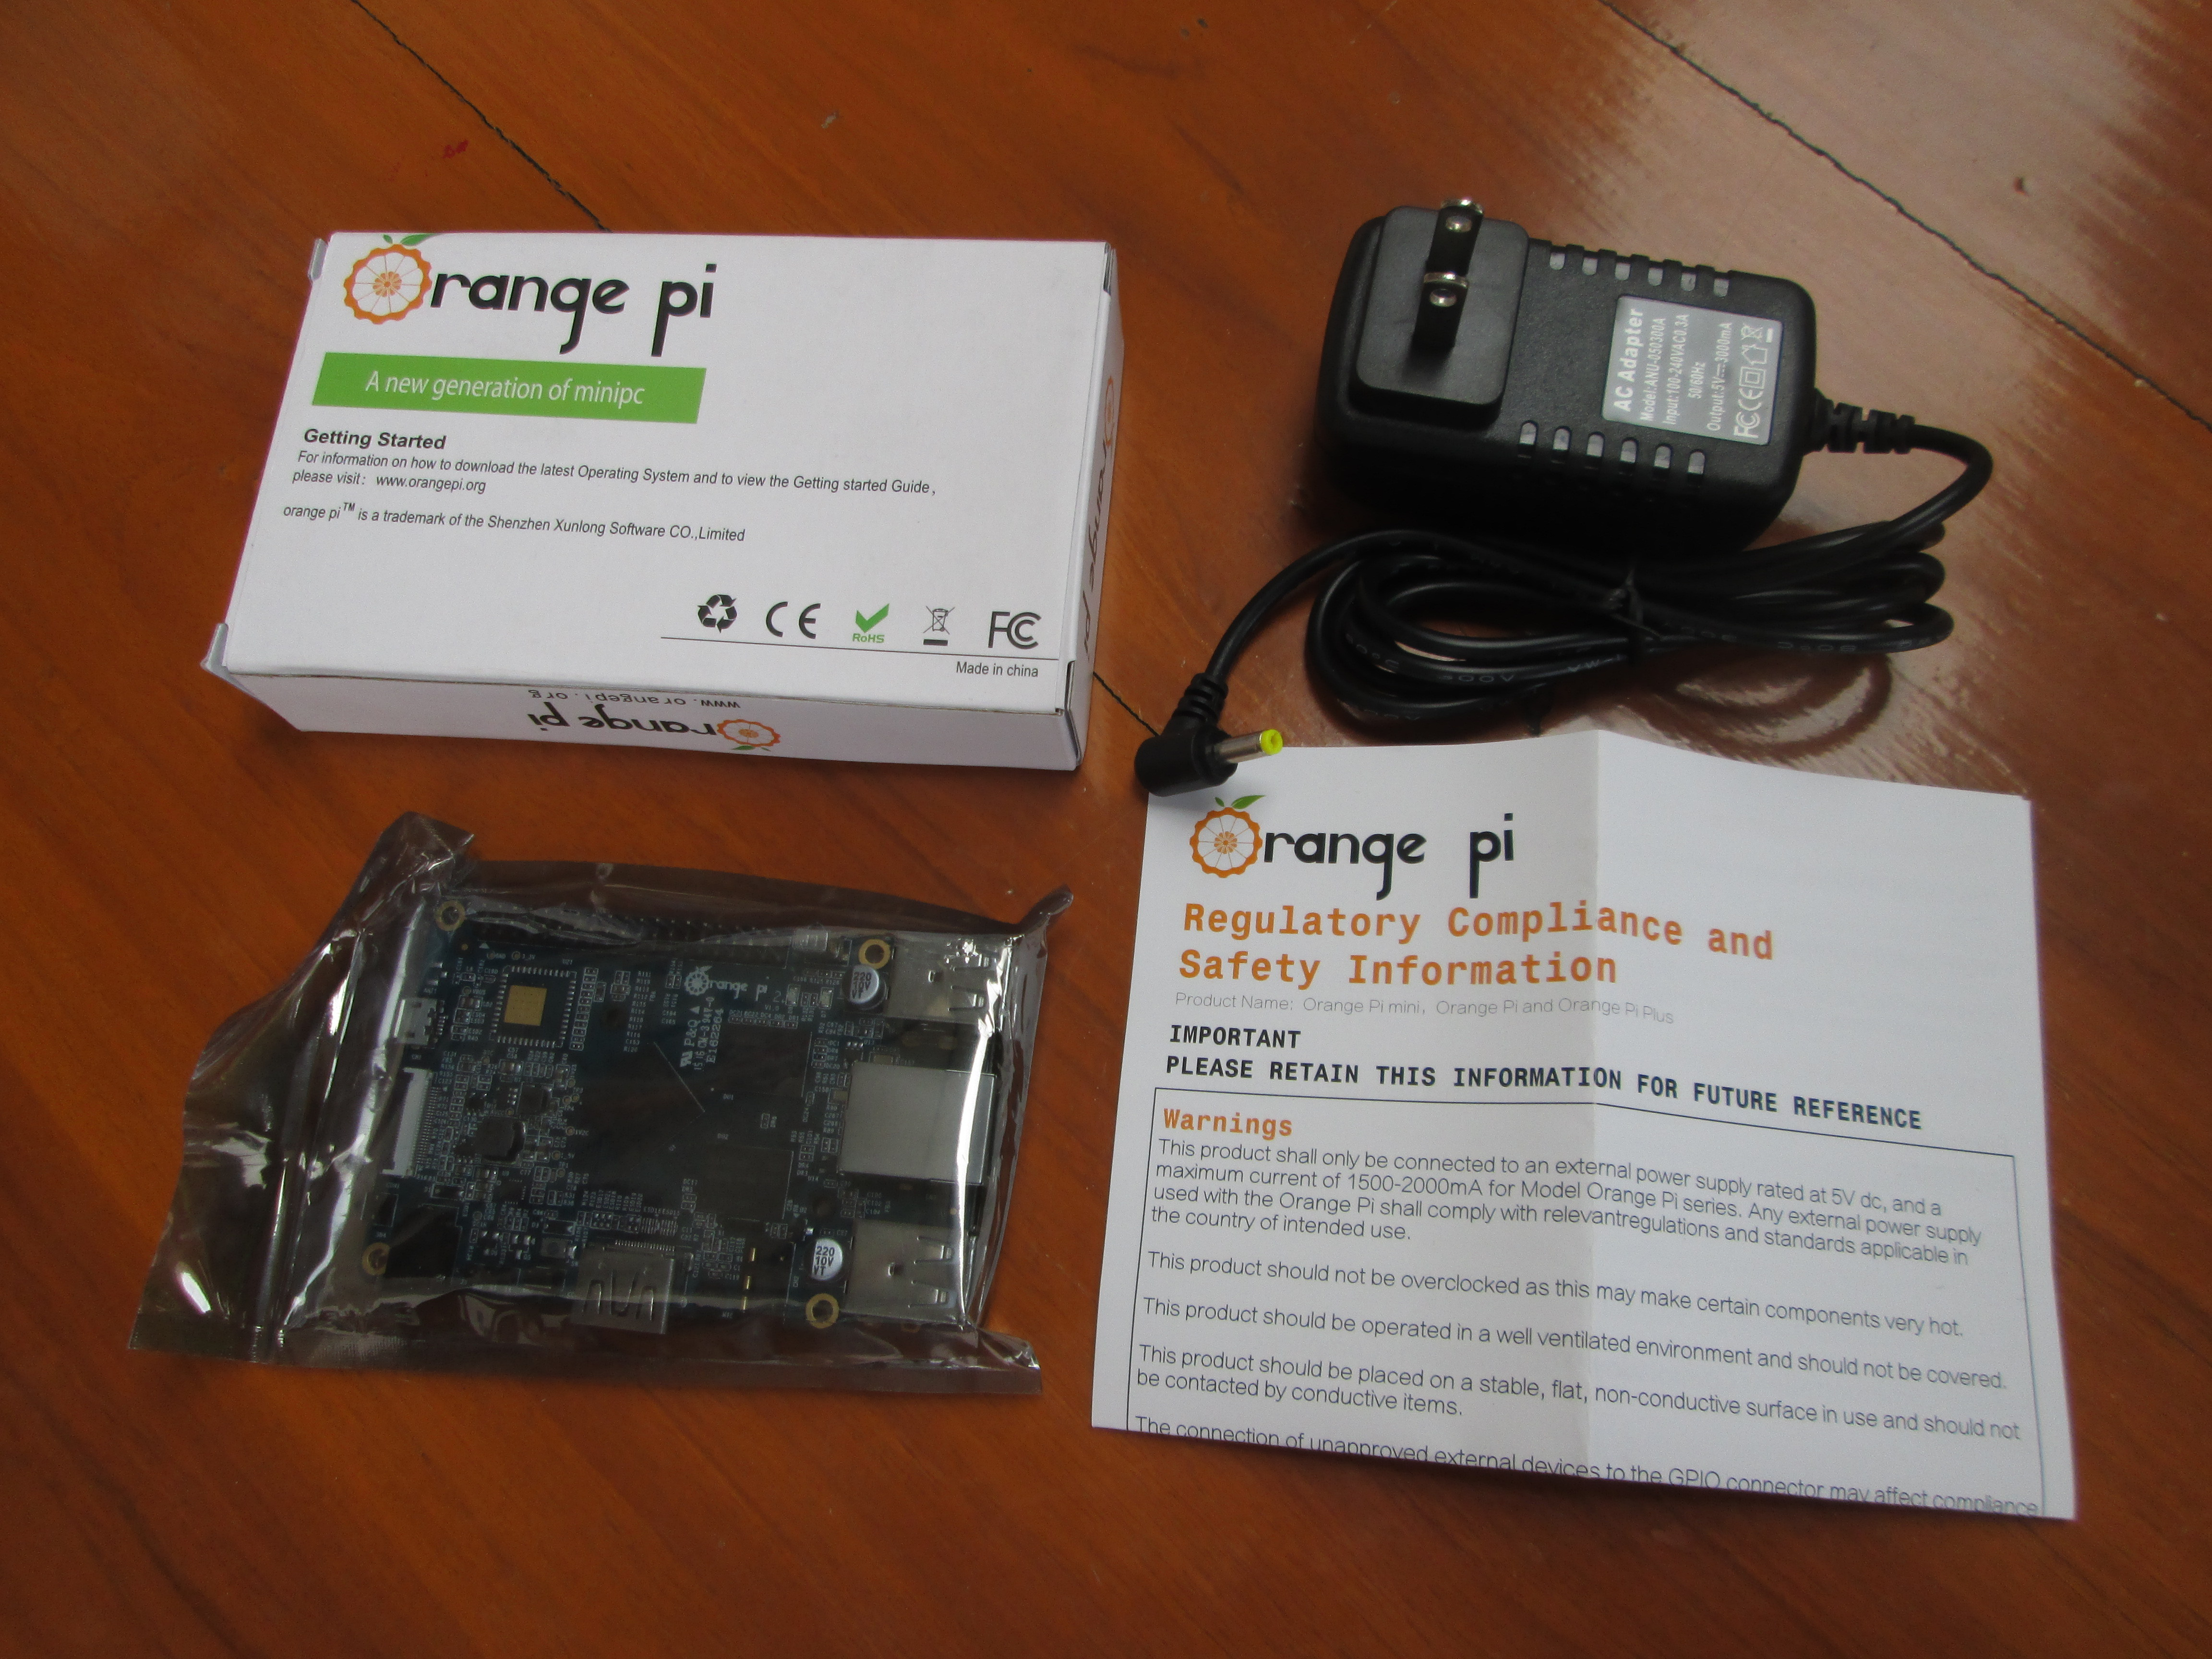 Getting Started With Orange Pi Pc 2 And Plus Development Boards Panel Board Wiring Software Click To Enlarge